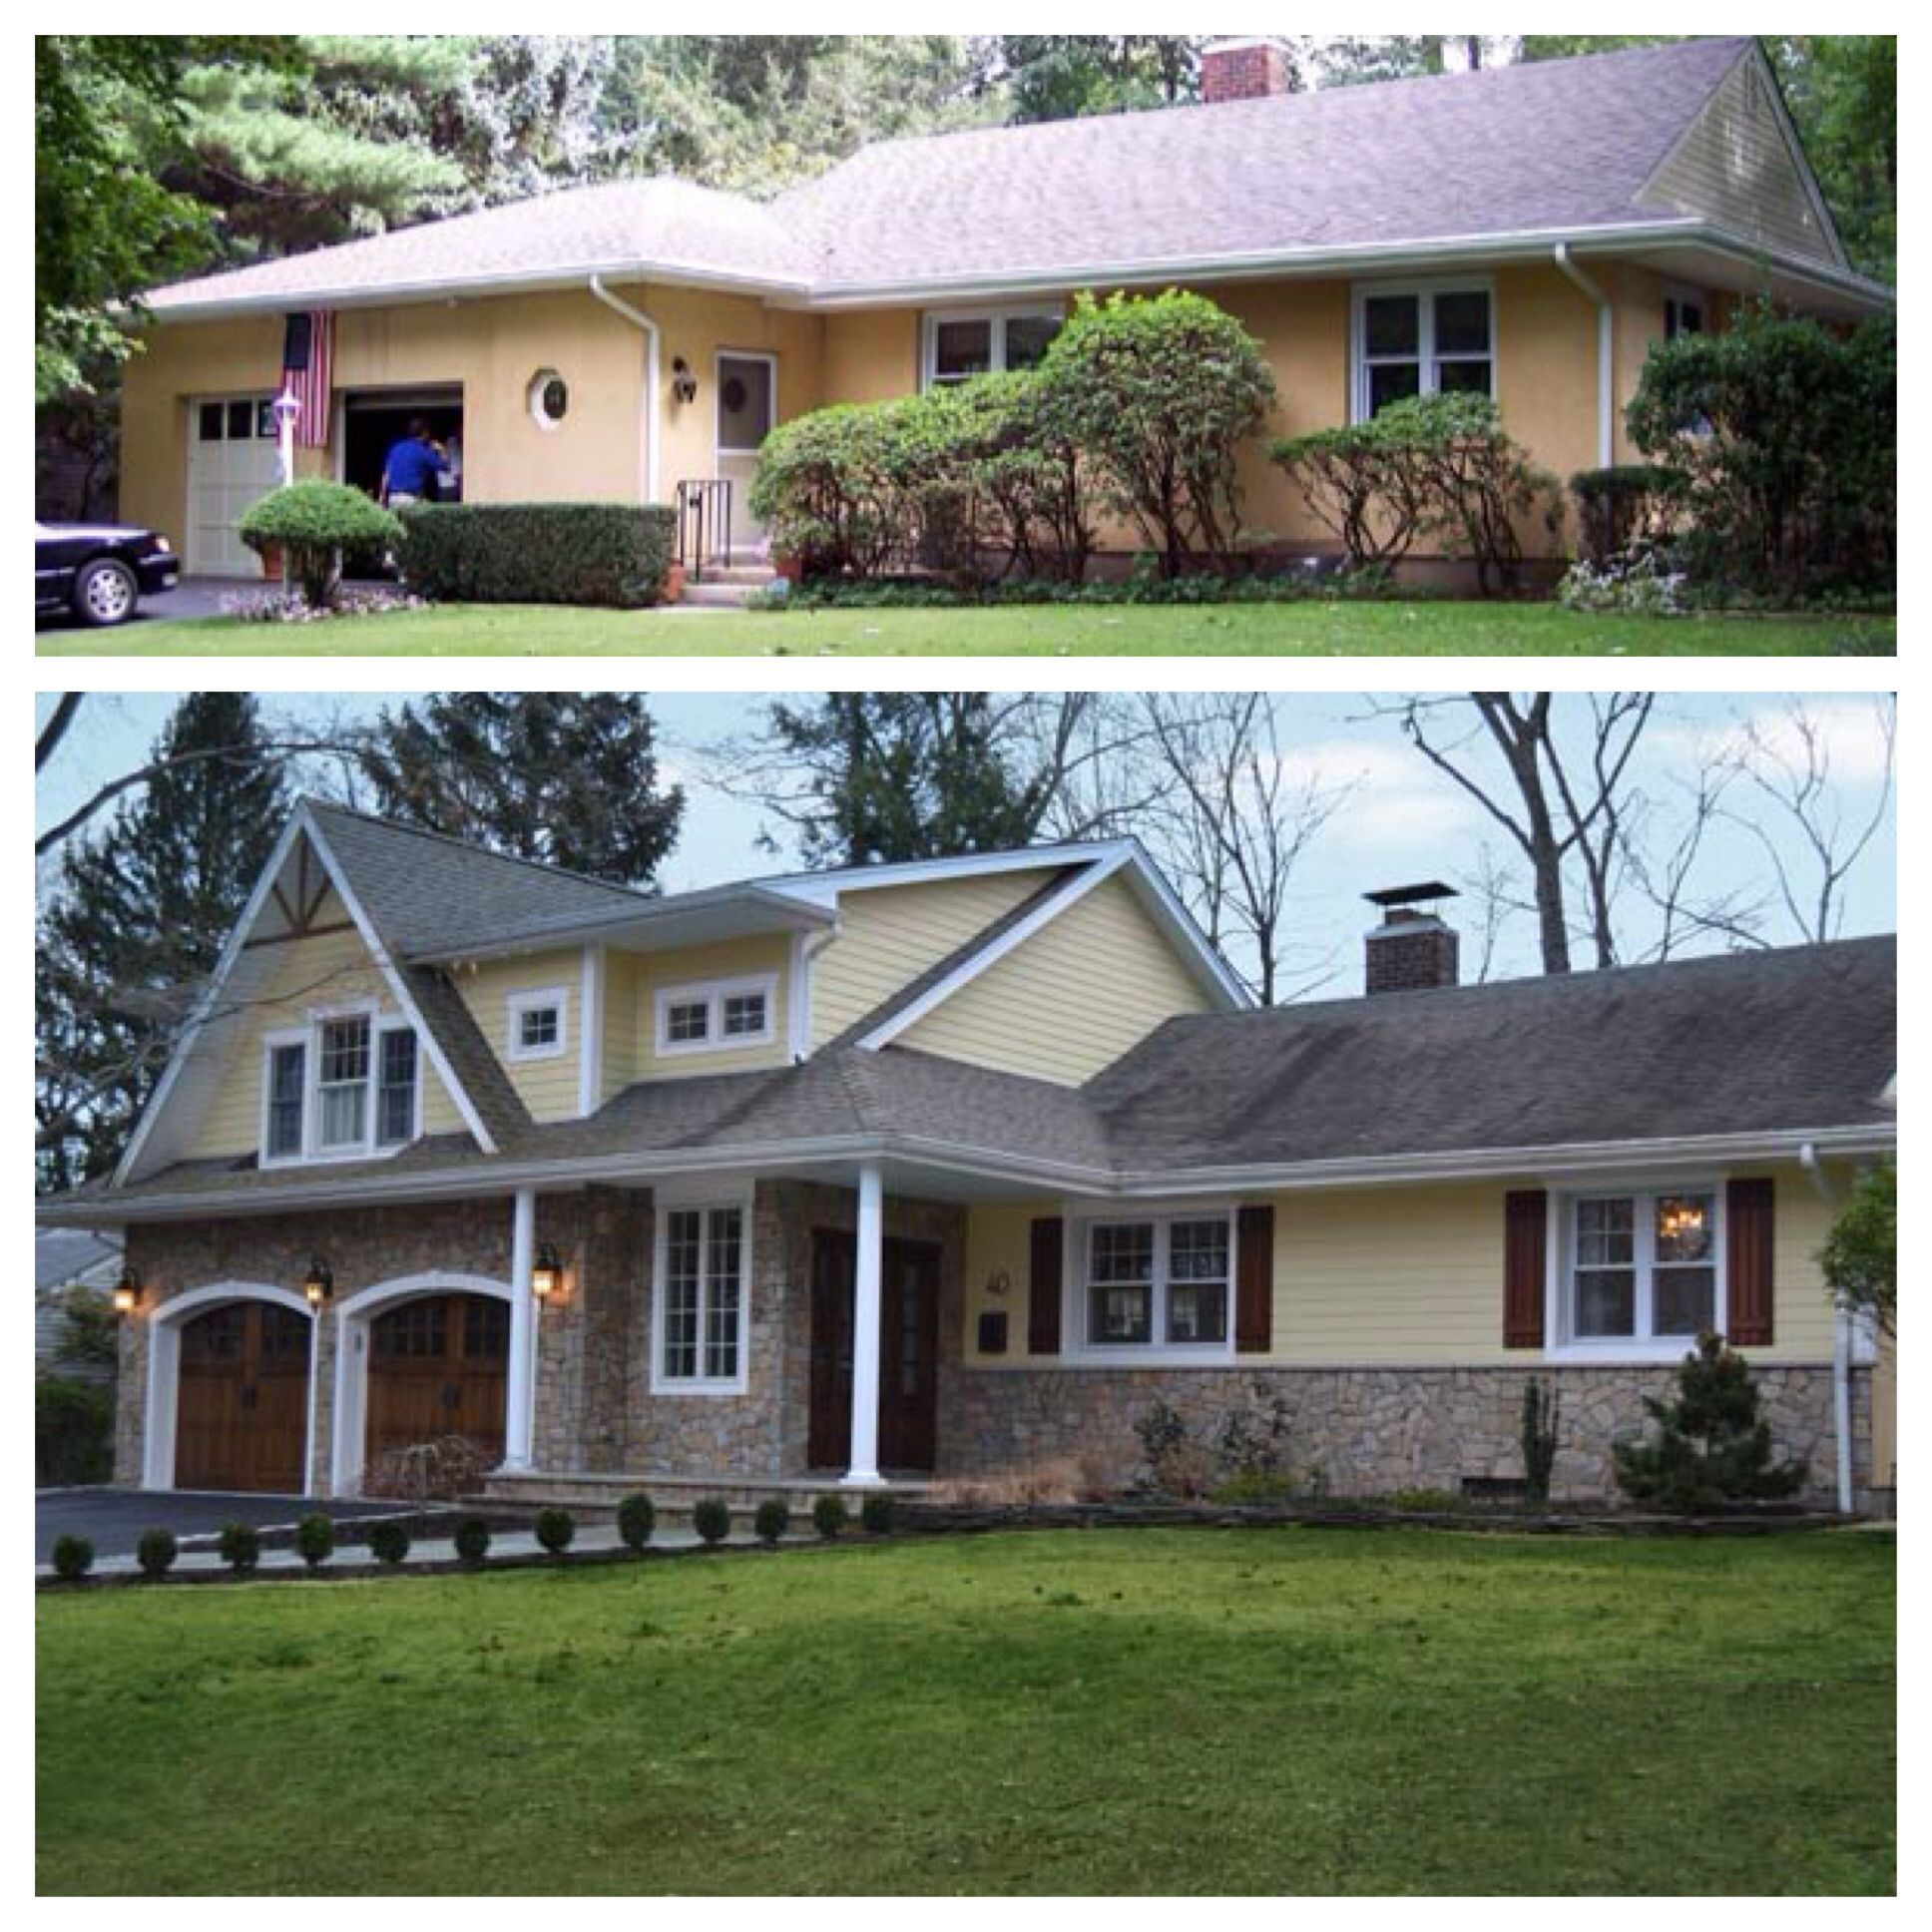 Before And After Curb Appeal Change Roofline On 1 Level House Add A 2nd Story Add Cover Exterior House Remodel Ranch House Remodel Home Exterior Makeover